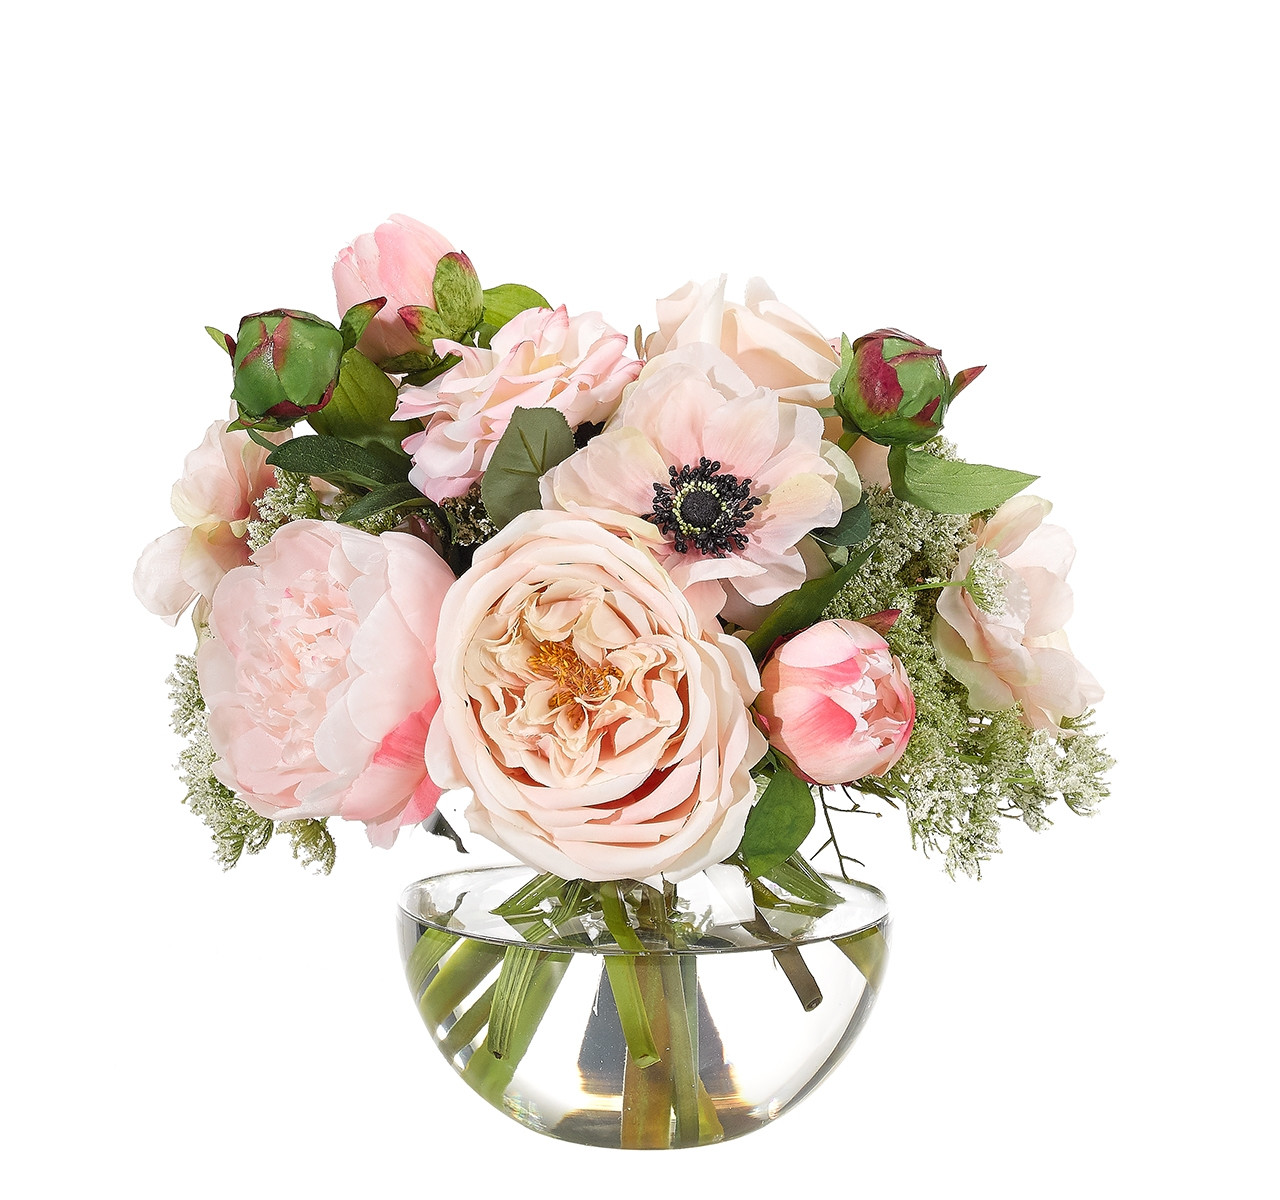 faux flower arrangements in vase of ndi faux florals and botanicals with custom orders we have an ample amount of beautiful realistic faux floral arrangements